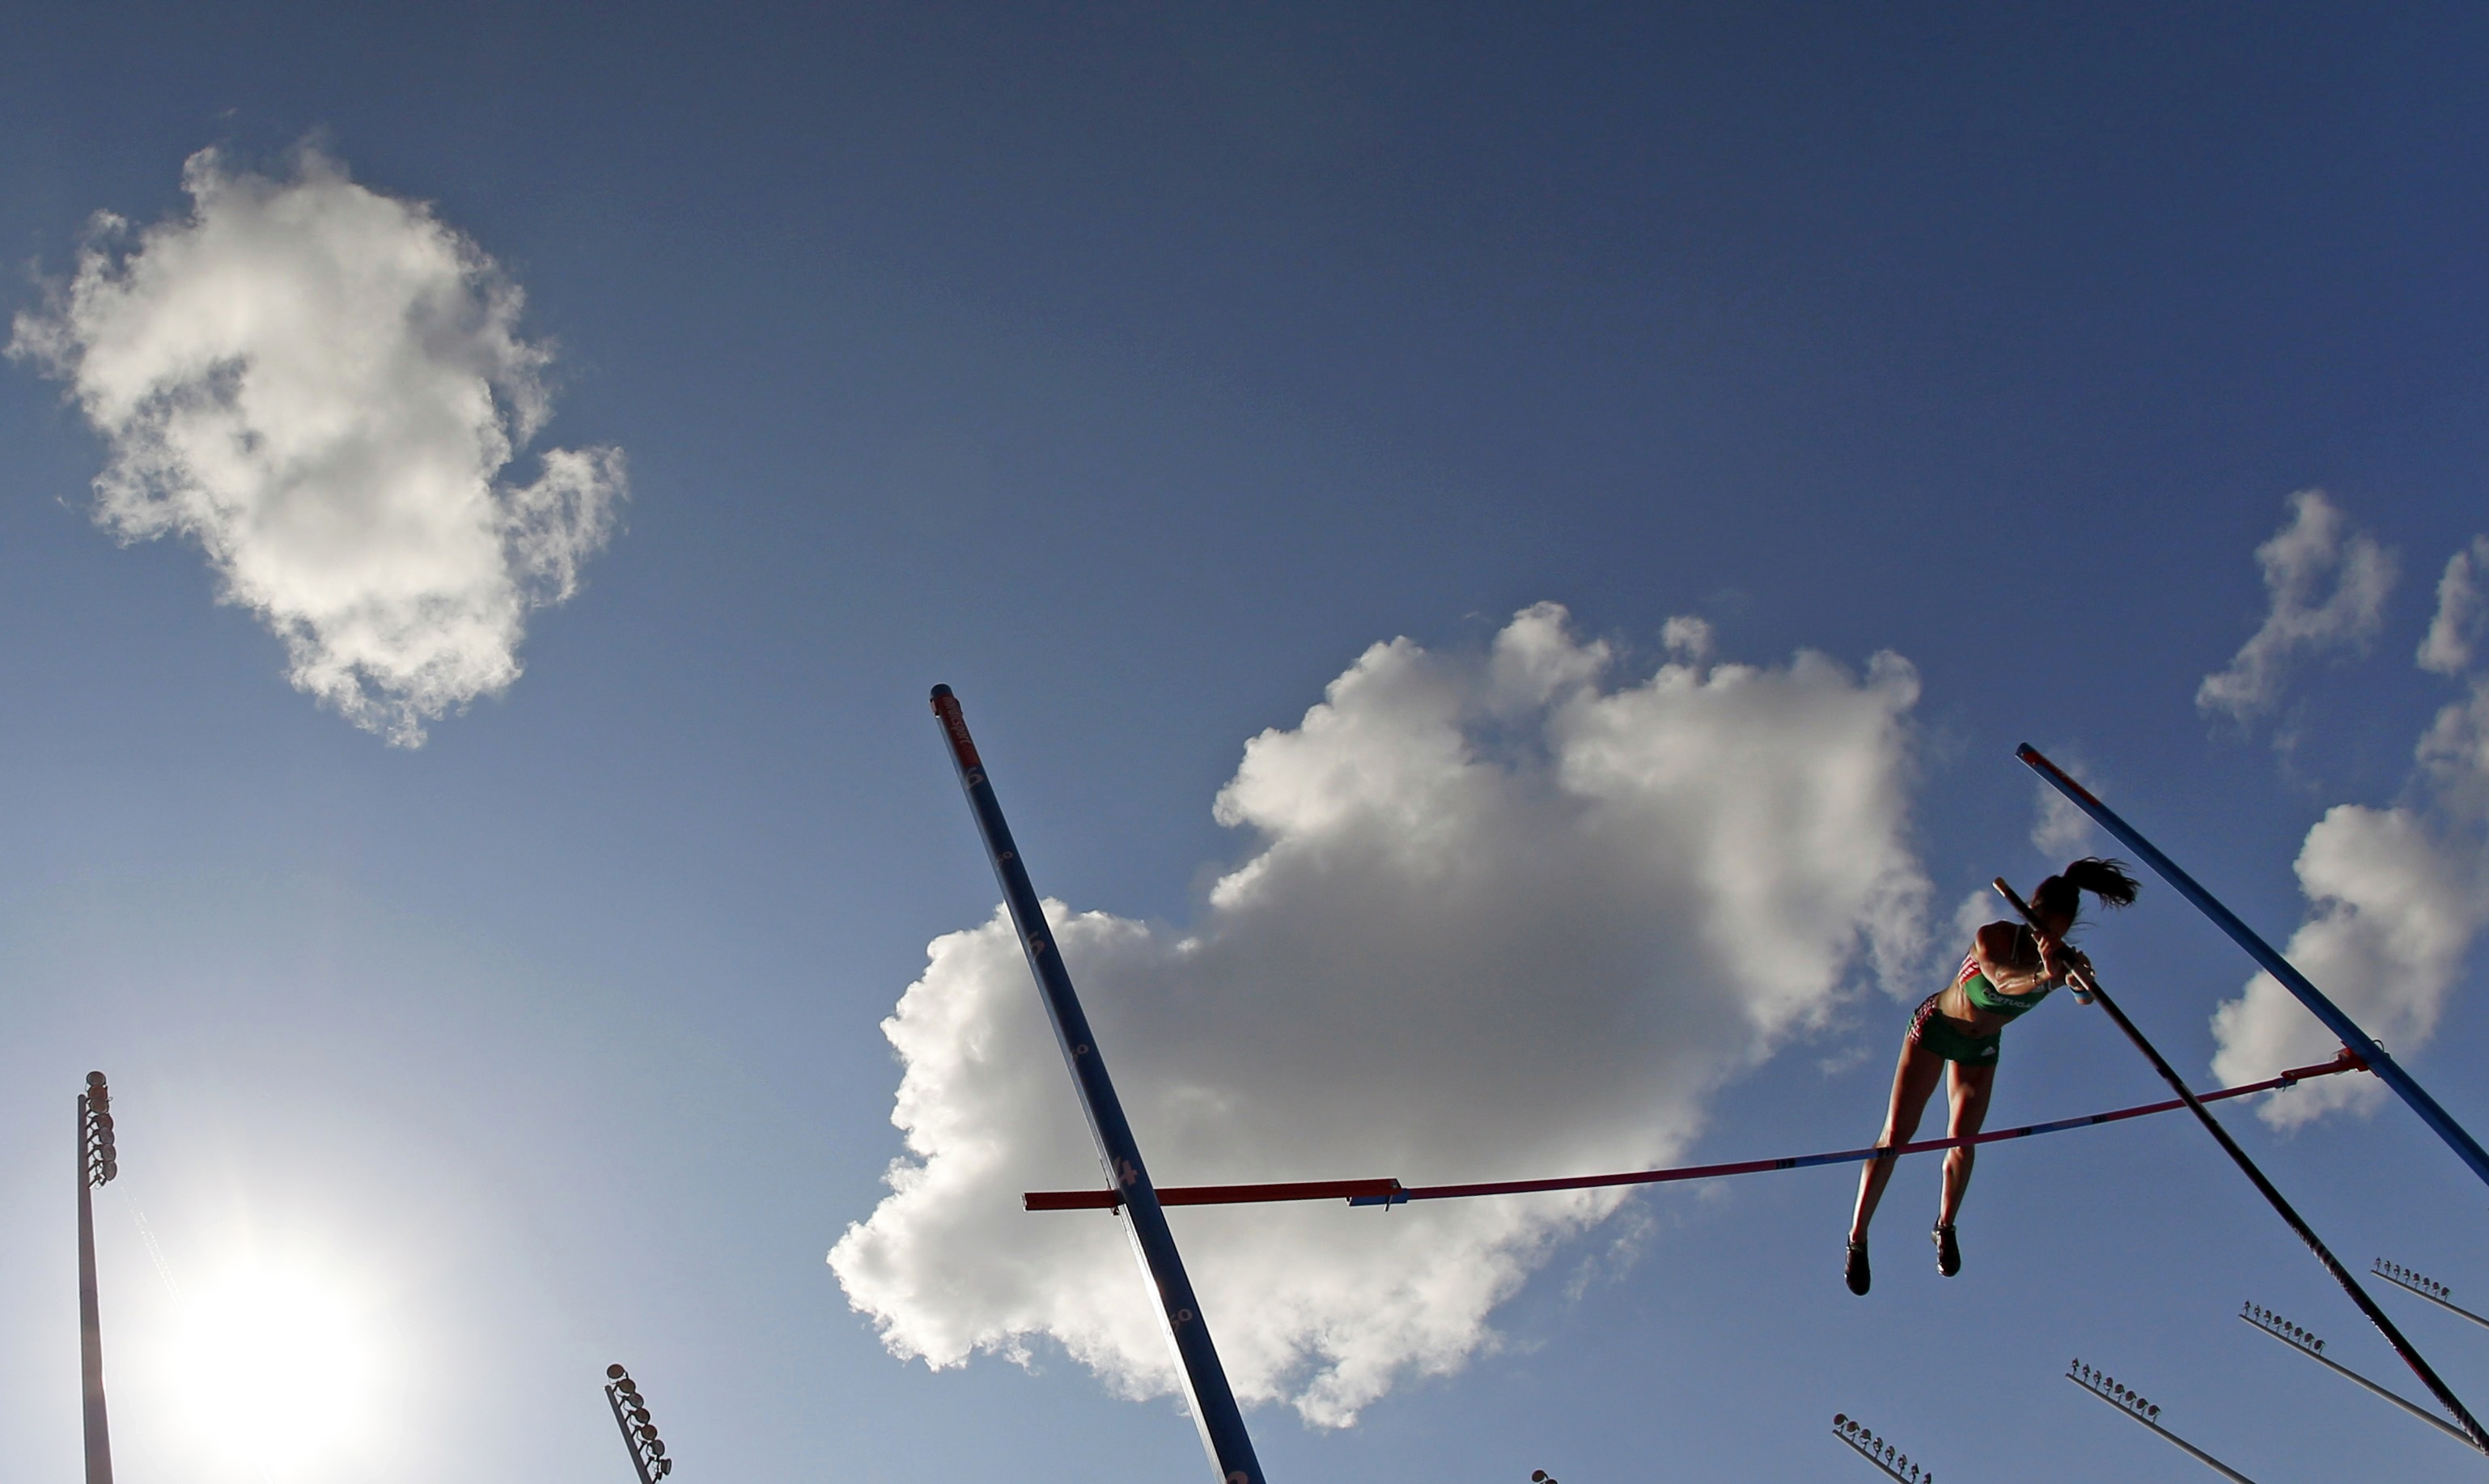 Onofre of Portugal competes in the women's pole vault qualifying rounds during the Zurich 2014 European Athletics Championships at the Letzigrund Stadium in Zurich